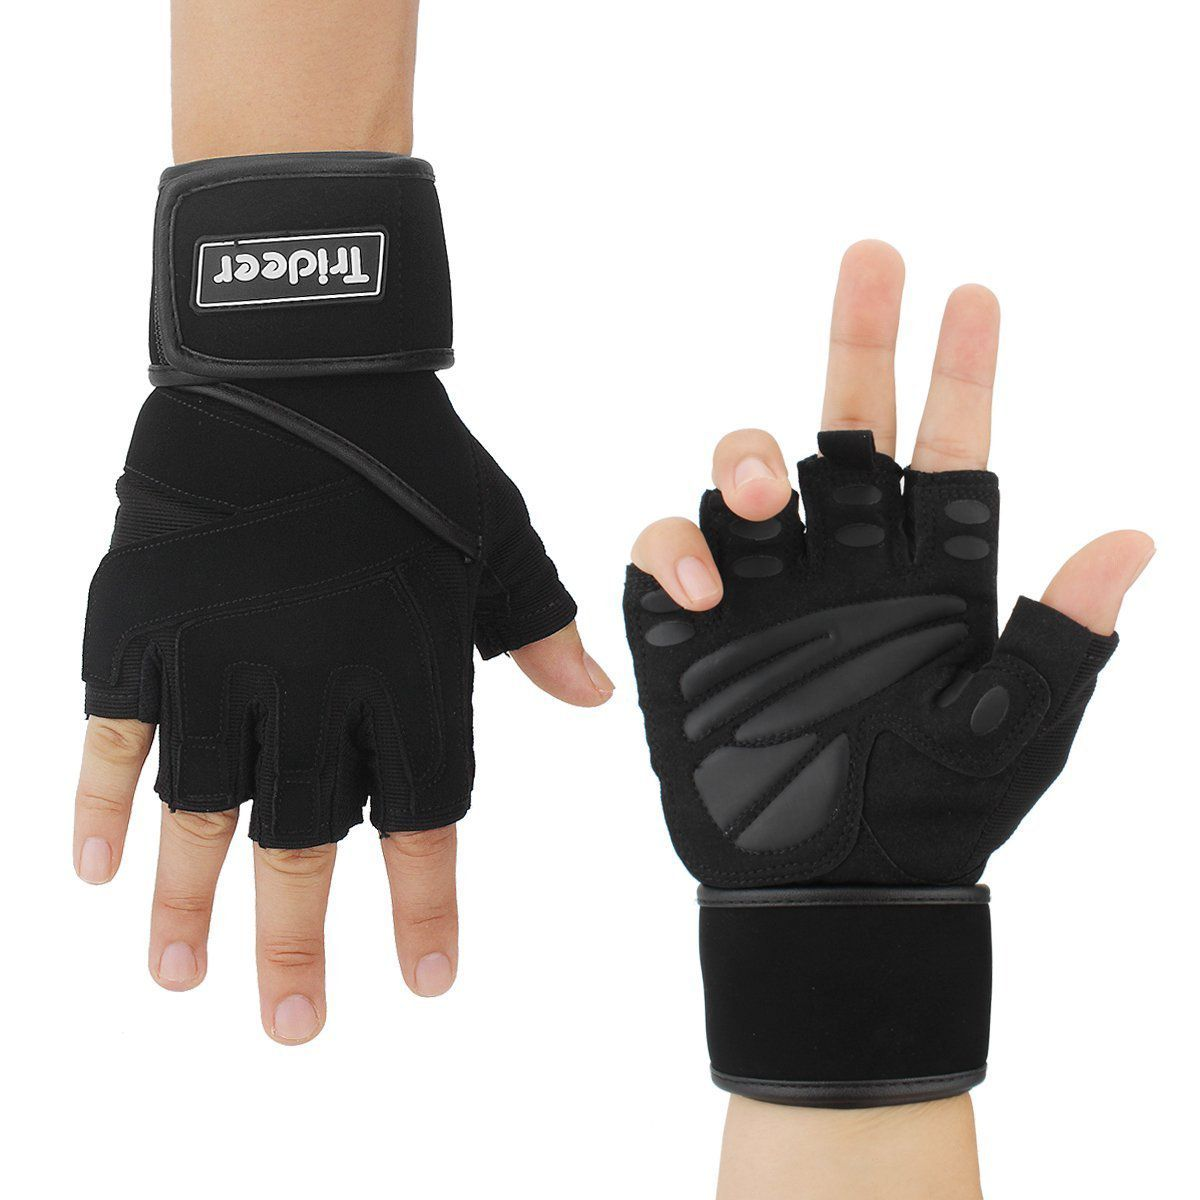 The 7 Best Weightlifting Gloves of 2019